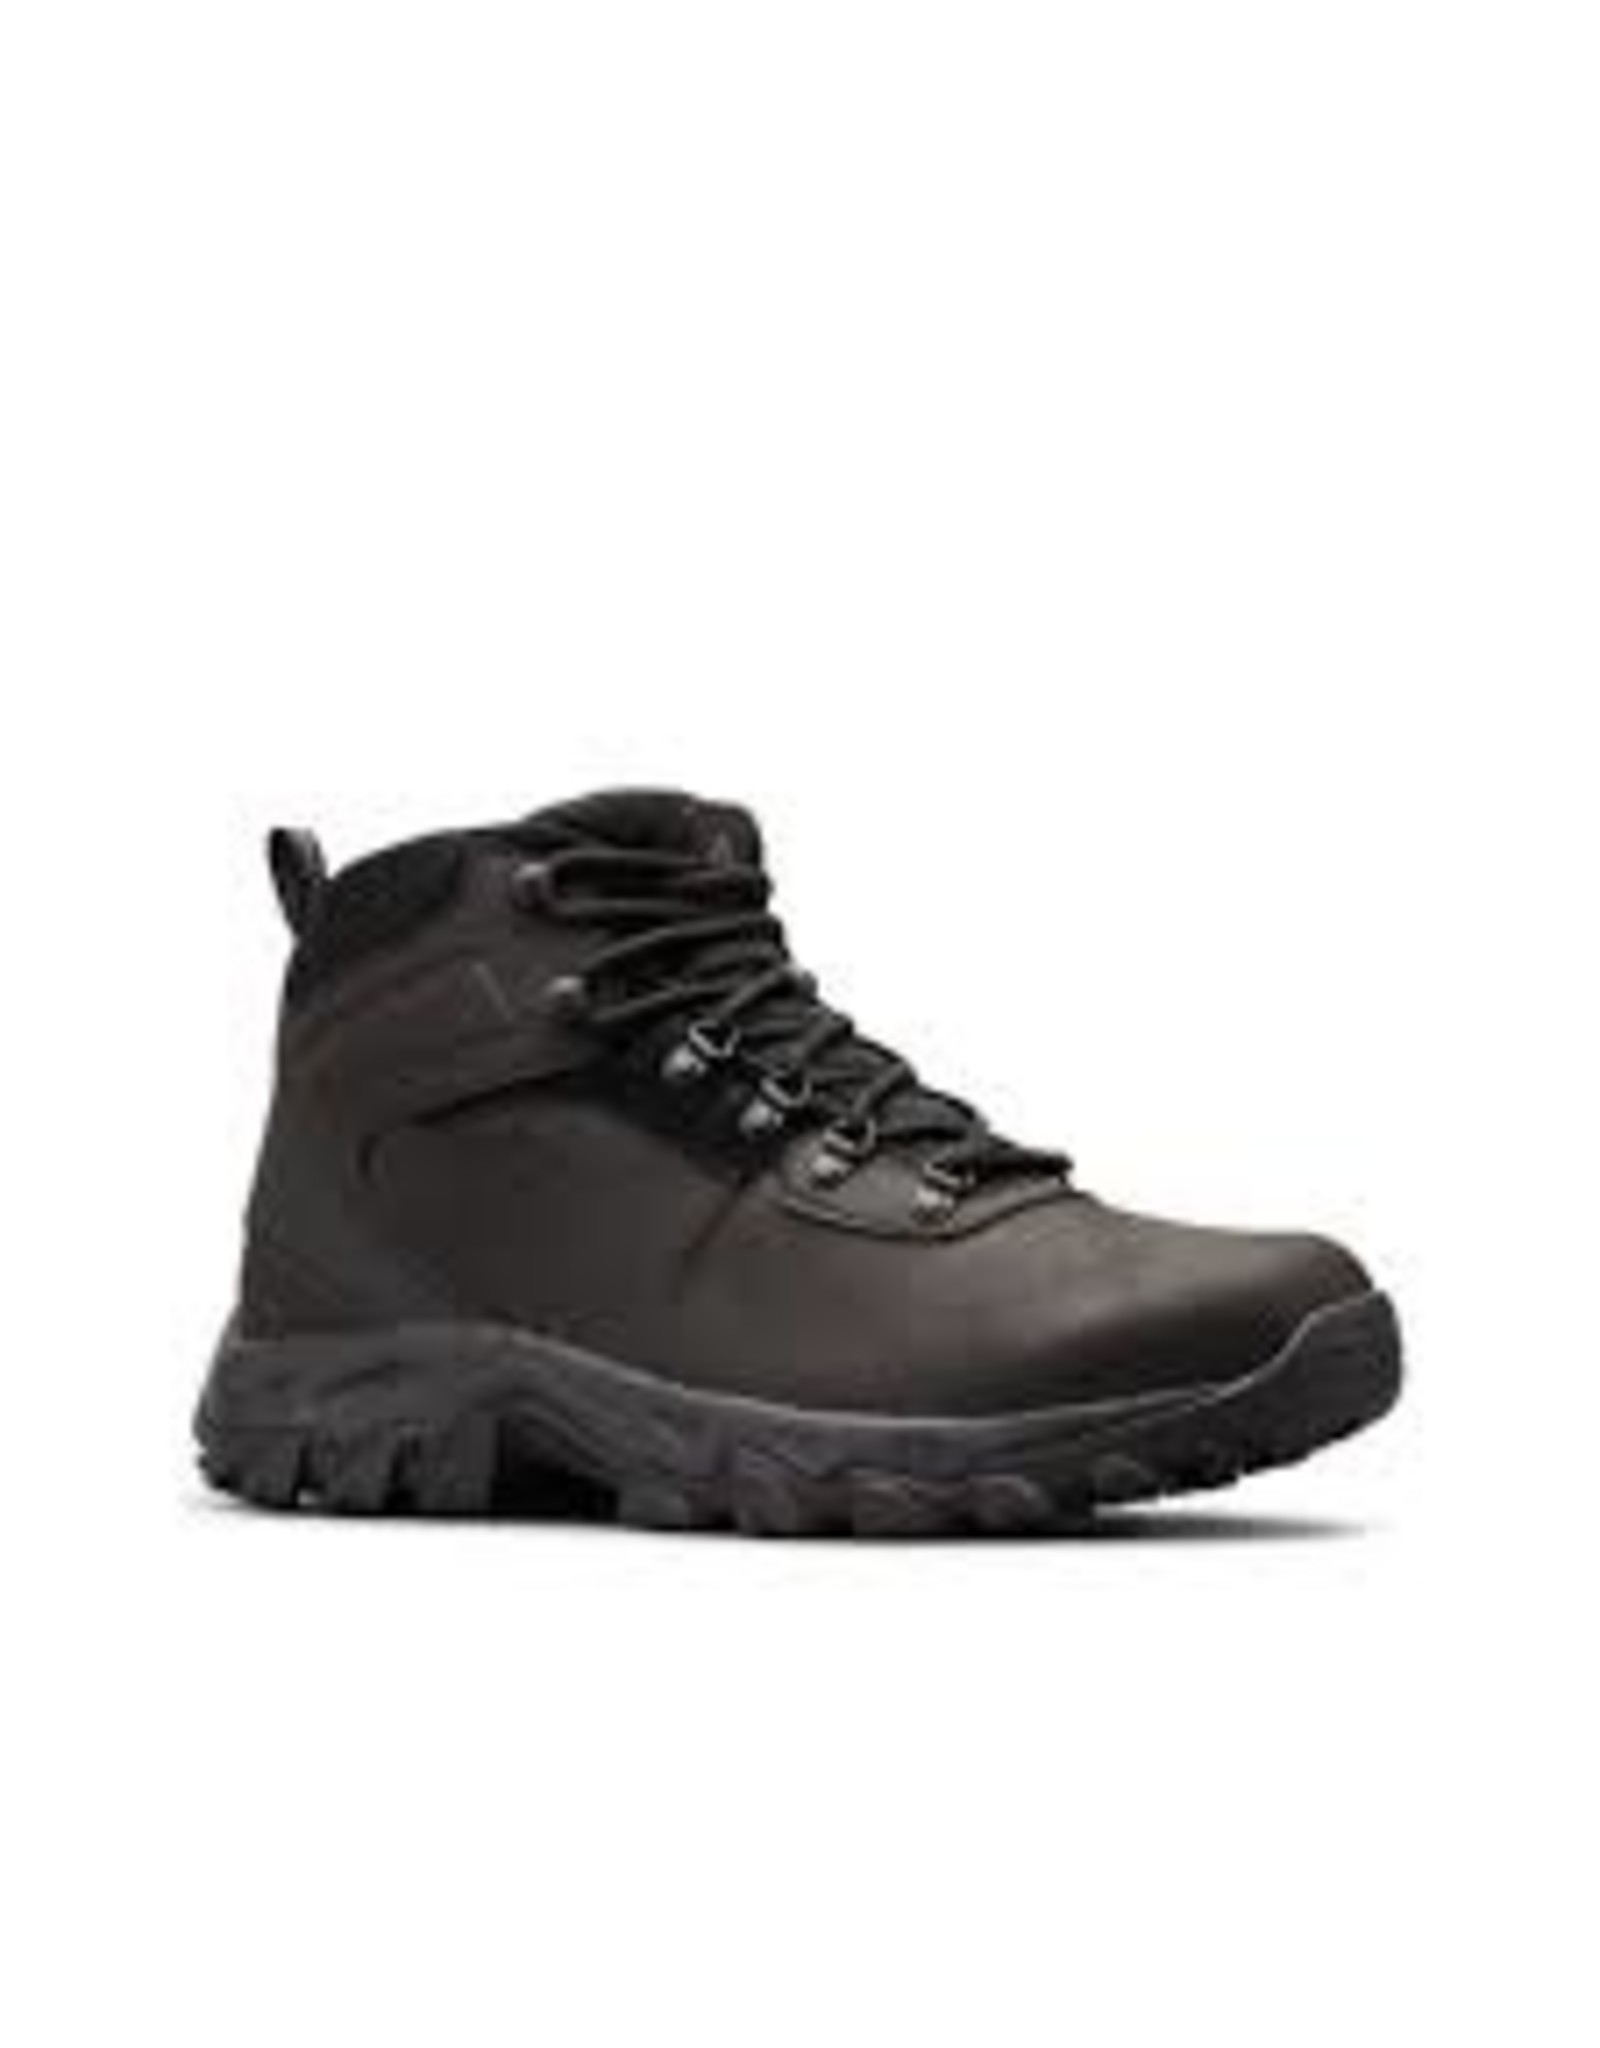 Columbia Columbia - Men's Newton Ridge Plus II Waterproof - Wide- Boot